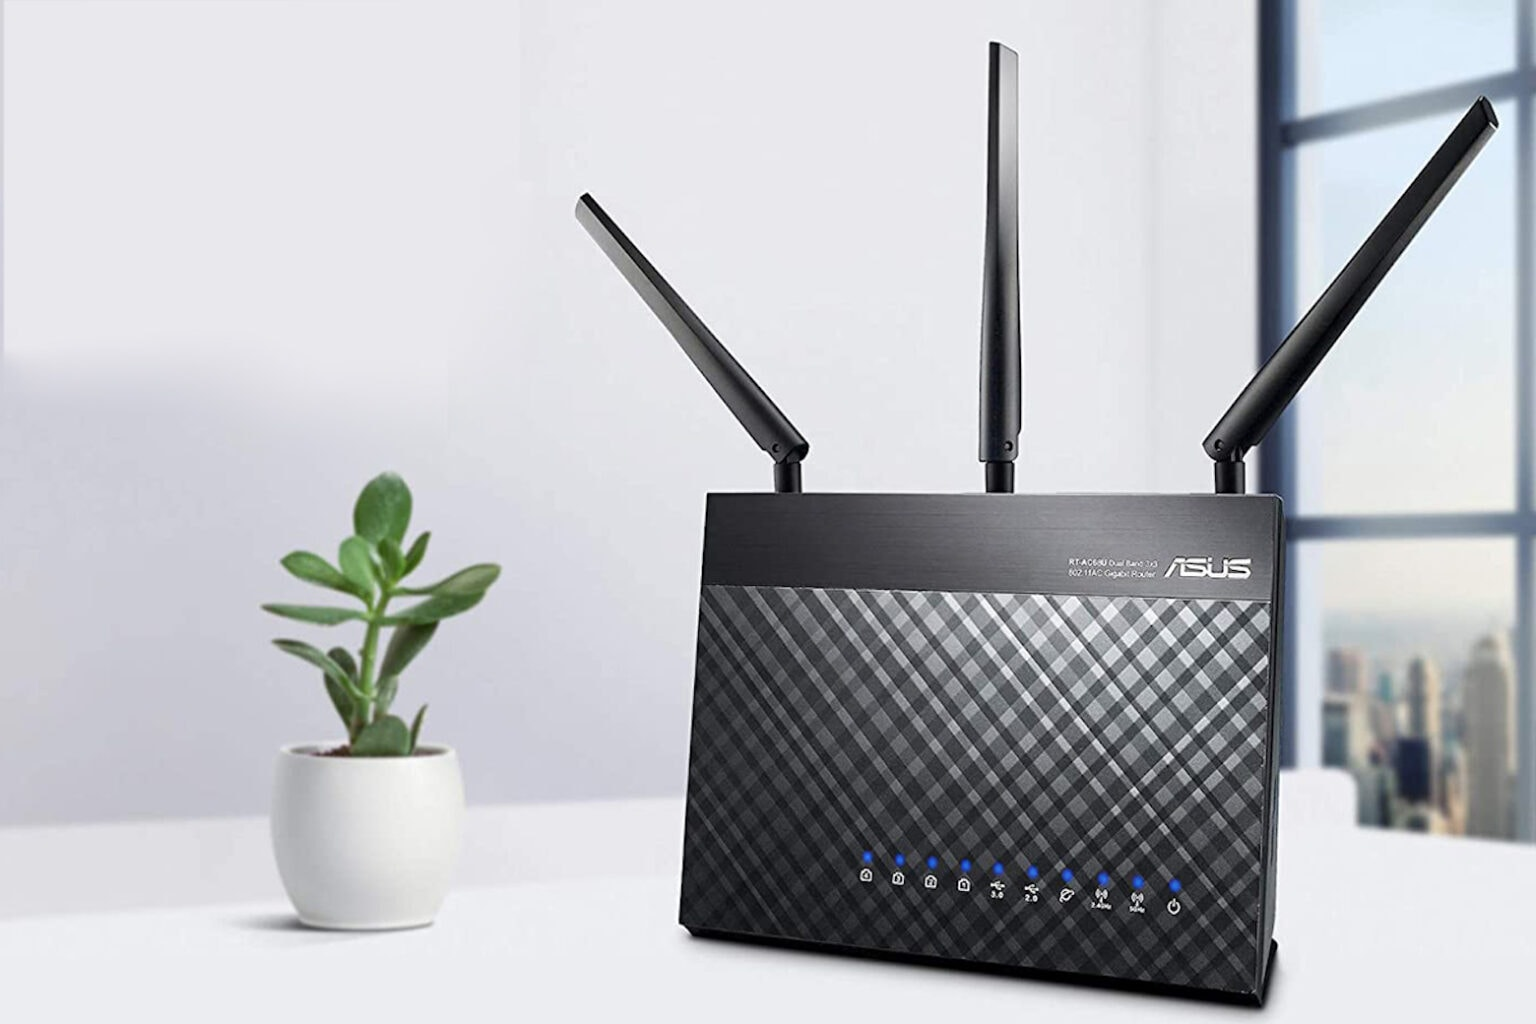 This Asus Wi-FI router racks up amazing reviews on Amazon and across the web.